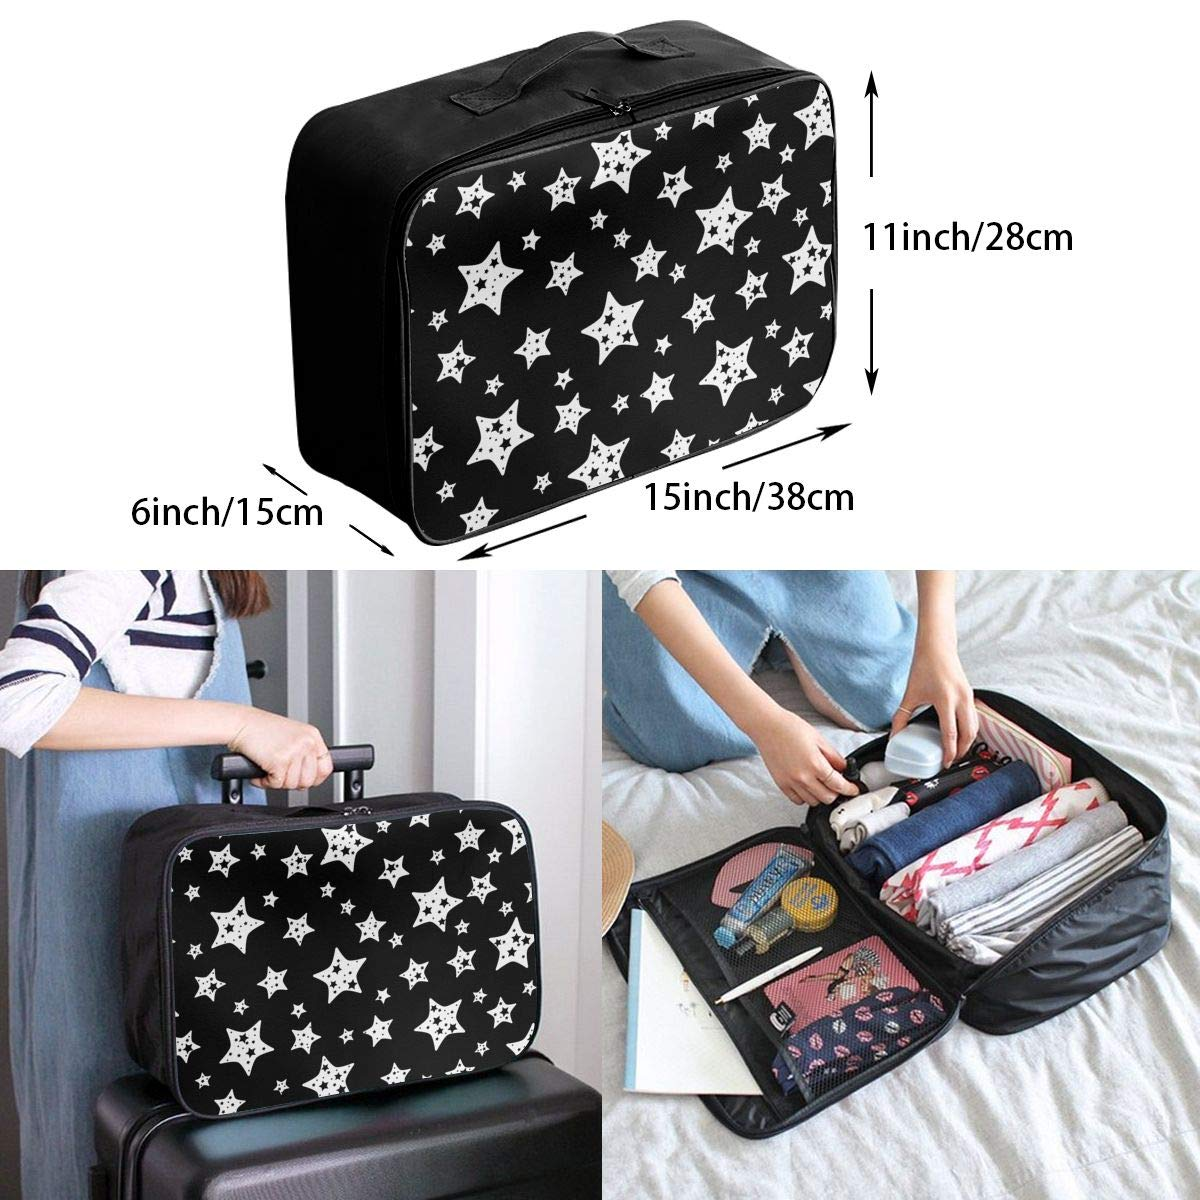 YueLJB Bright Stars Lightweight Large Capacity Portable Luggage Bag Travel Duffel Bag Storage Carry Luggage Duffle Tote Bag